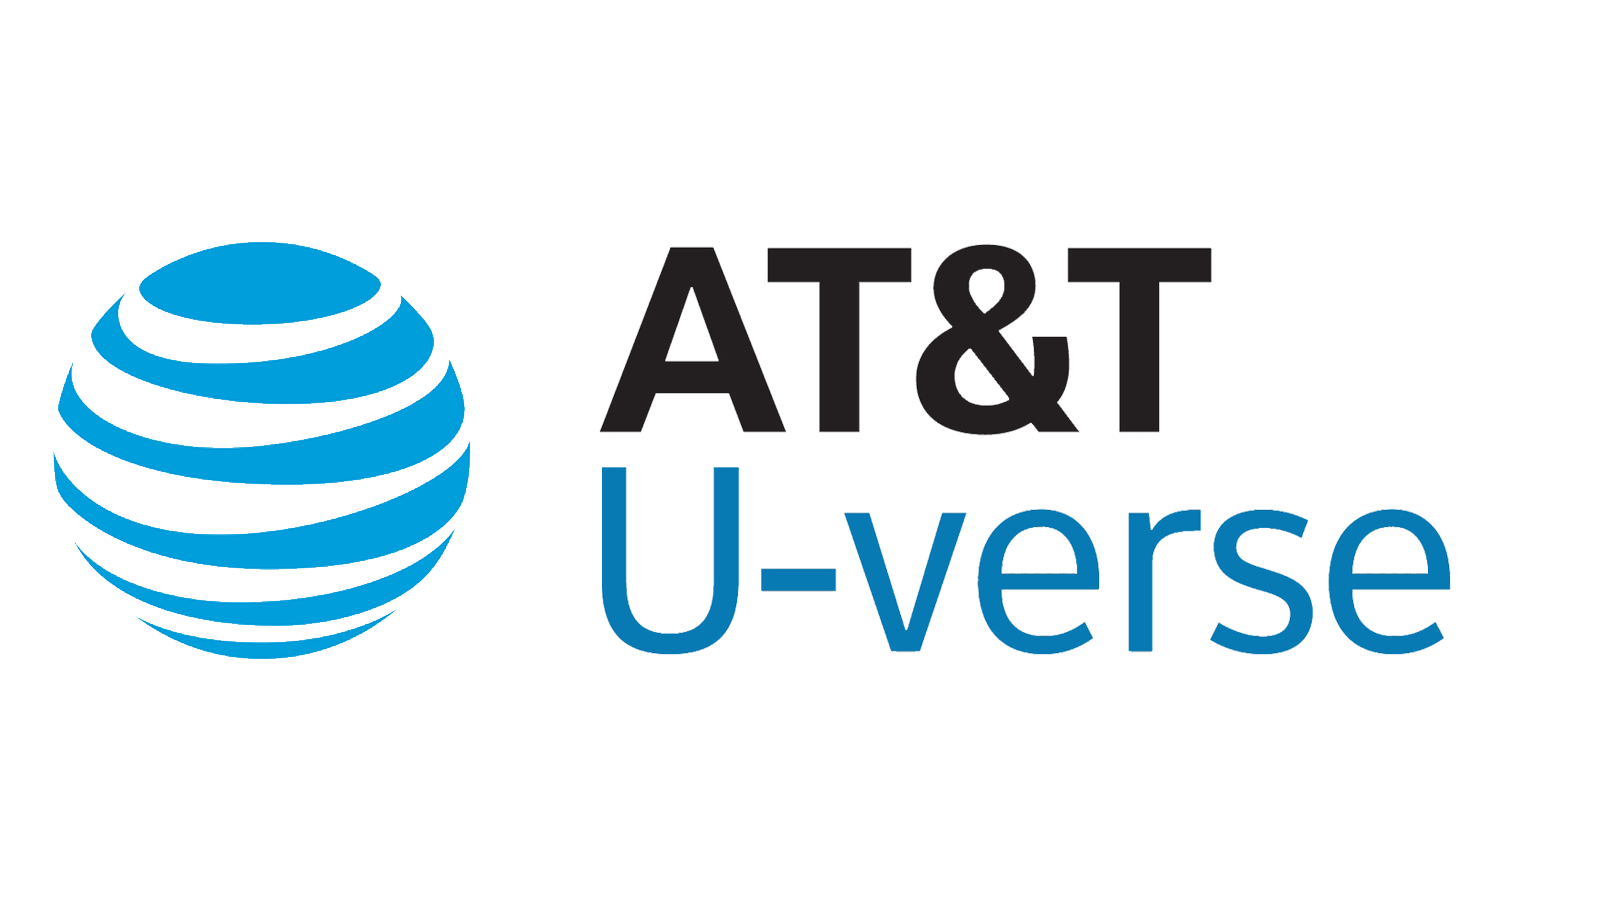 The proposed AT&T/Time Warner deal combines two powerhouses. AT&T is the nation's largest pay TV provider, the second-largest wireless provider, and the third-largest home Internet provider.